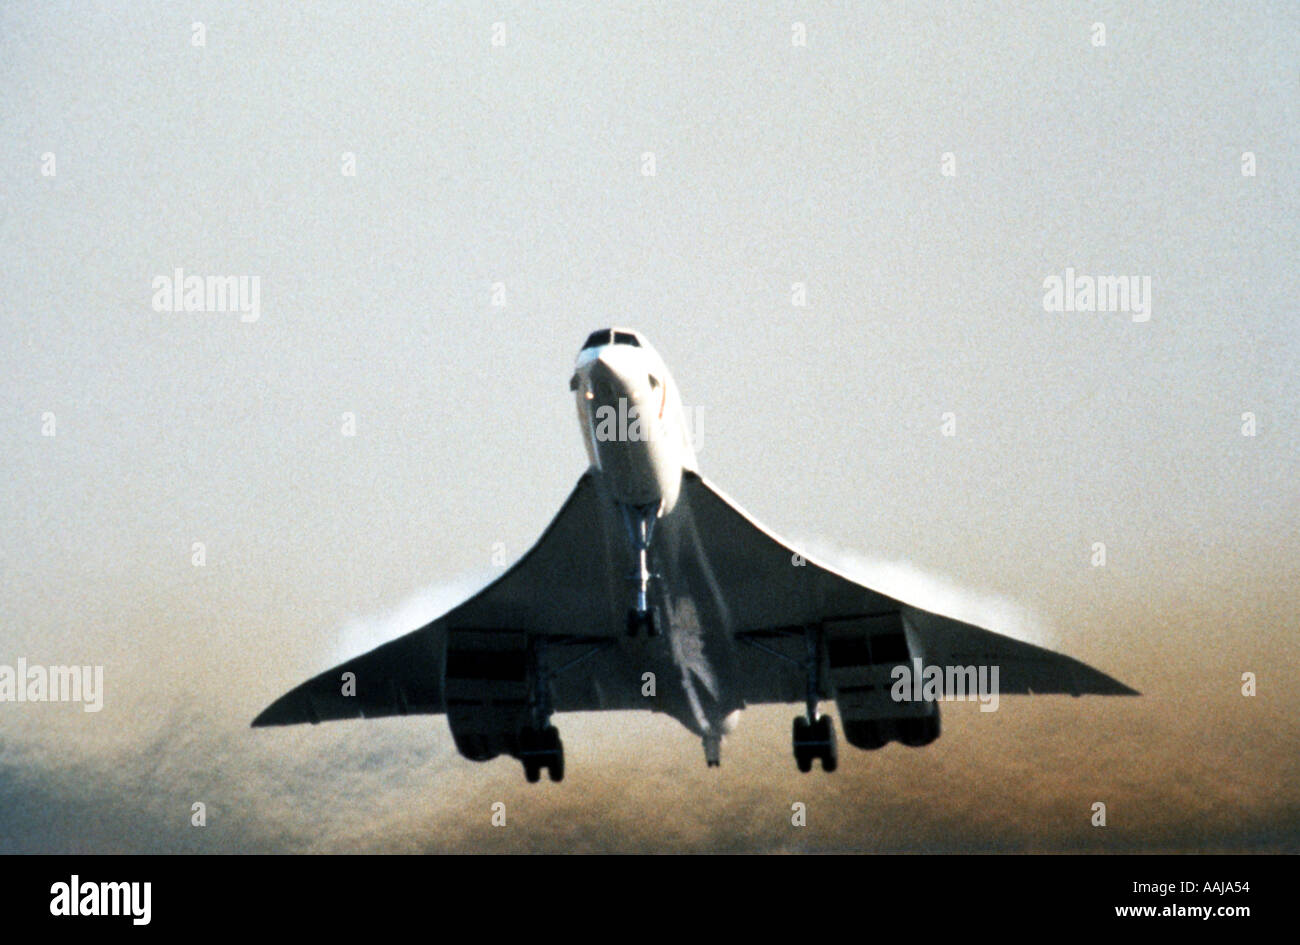 Concorde aircraft taking off from runway - Stock Image